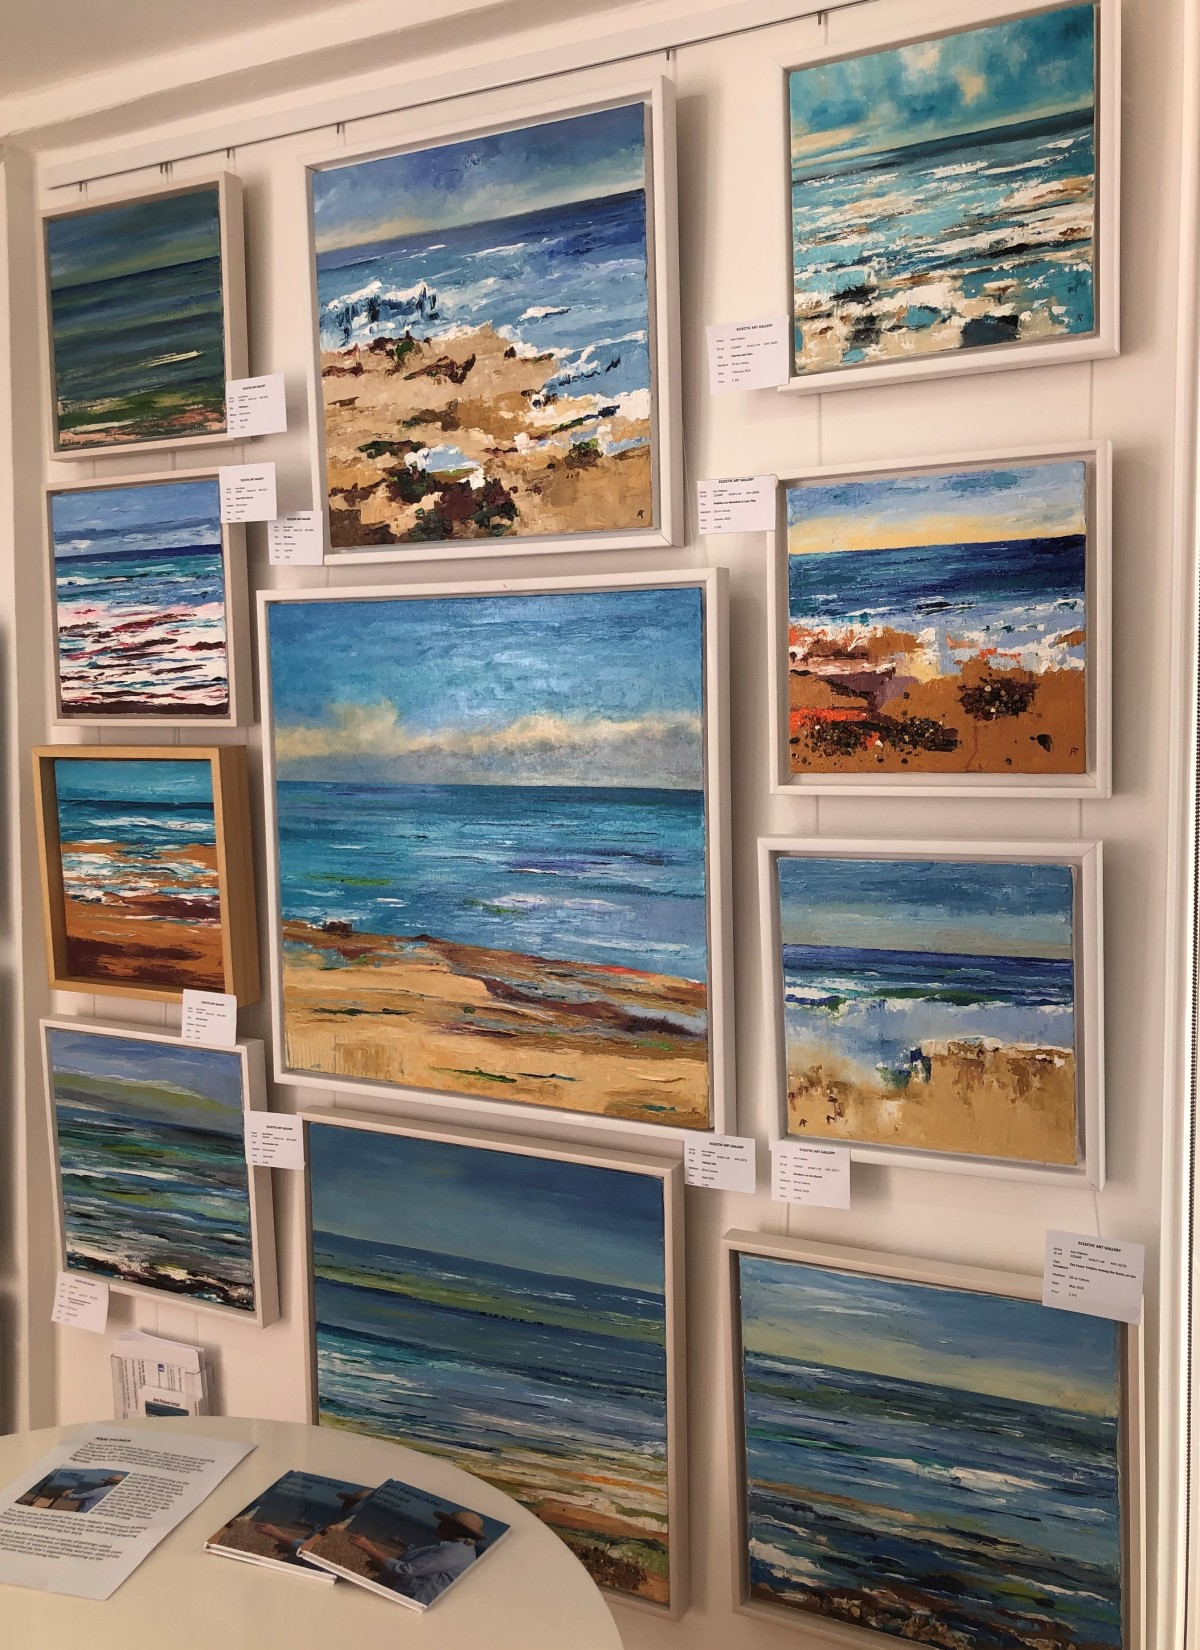 Ann Palmer Paintings in Eclectic Art Galley, Margate August 2020